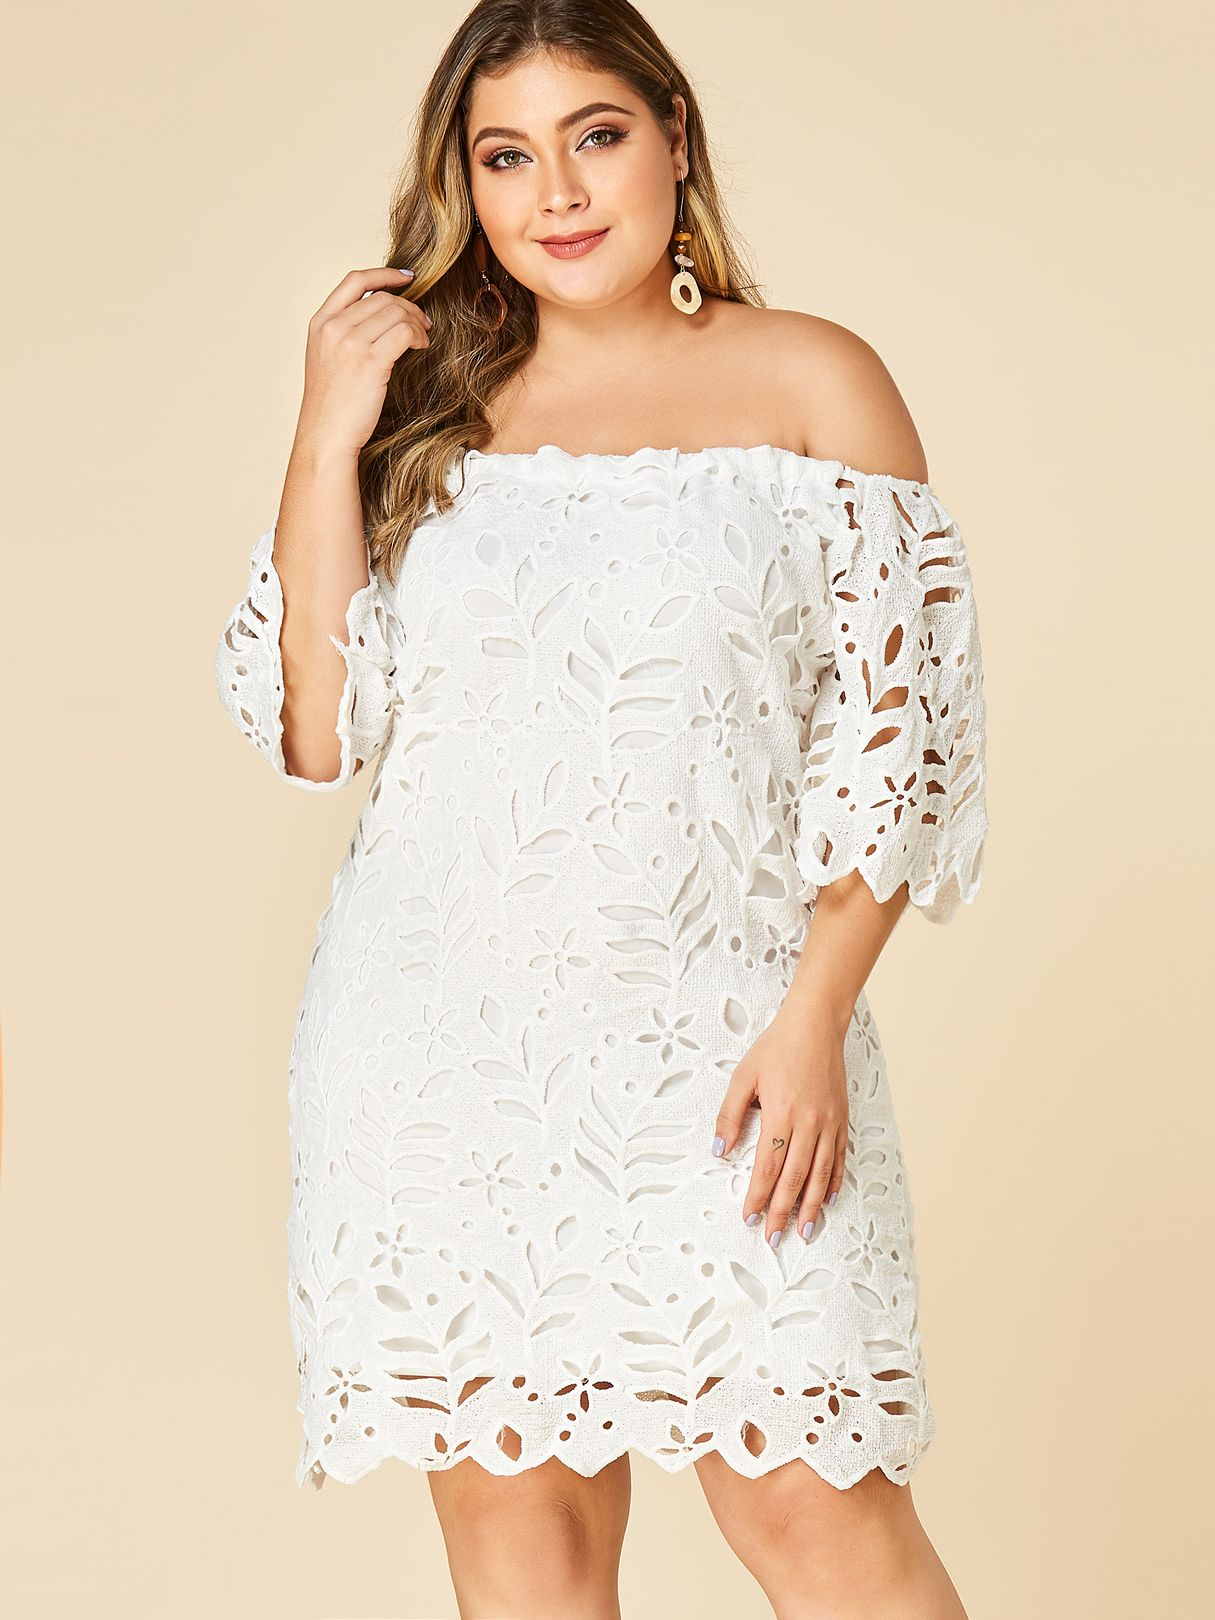 Extra 15 Your First Order On Yonis App Lace White Dress Off Shoulder Dresses Half Sleeve Dresses [ 1620 x 1215 Pixel ]